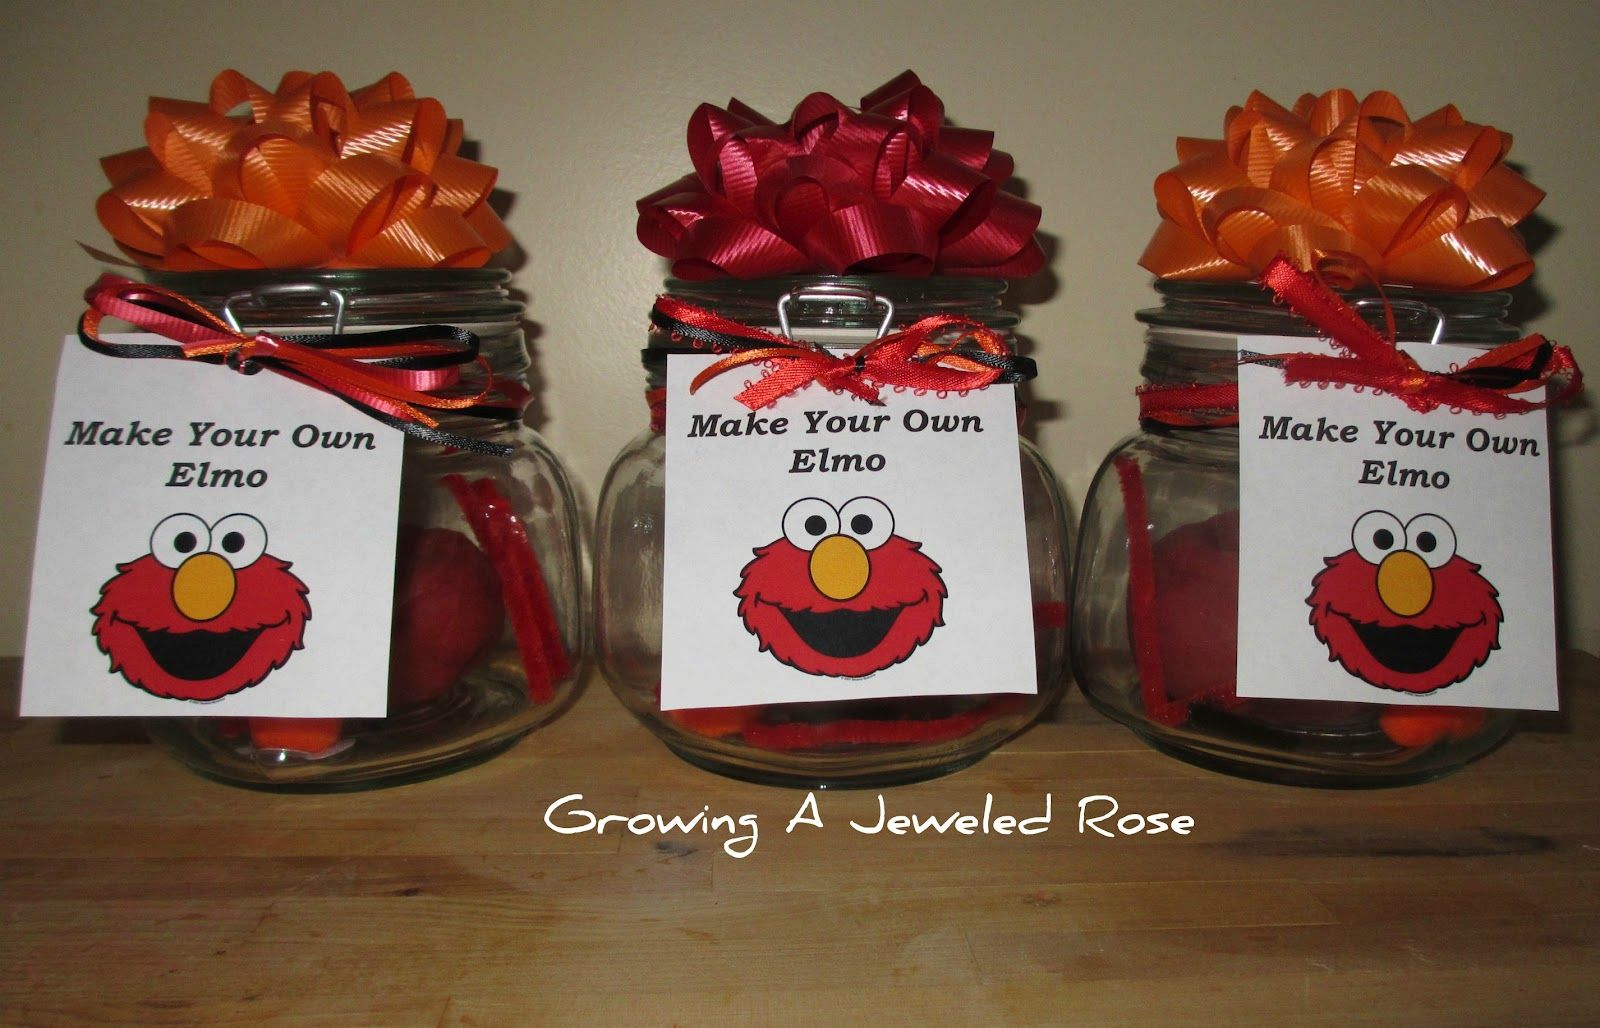 Growing a jeweled rose birthday ideas great favors googly eyes birthday party ideas solutioingenieria Choice Image